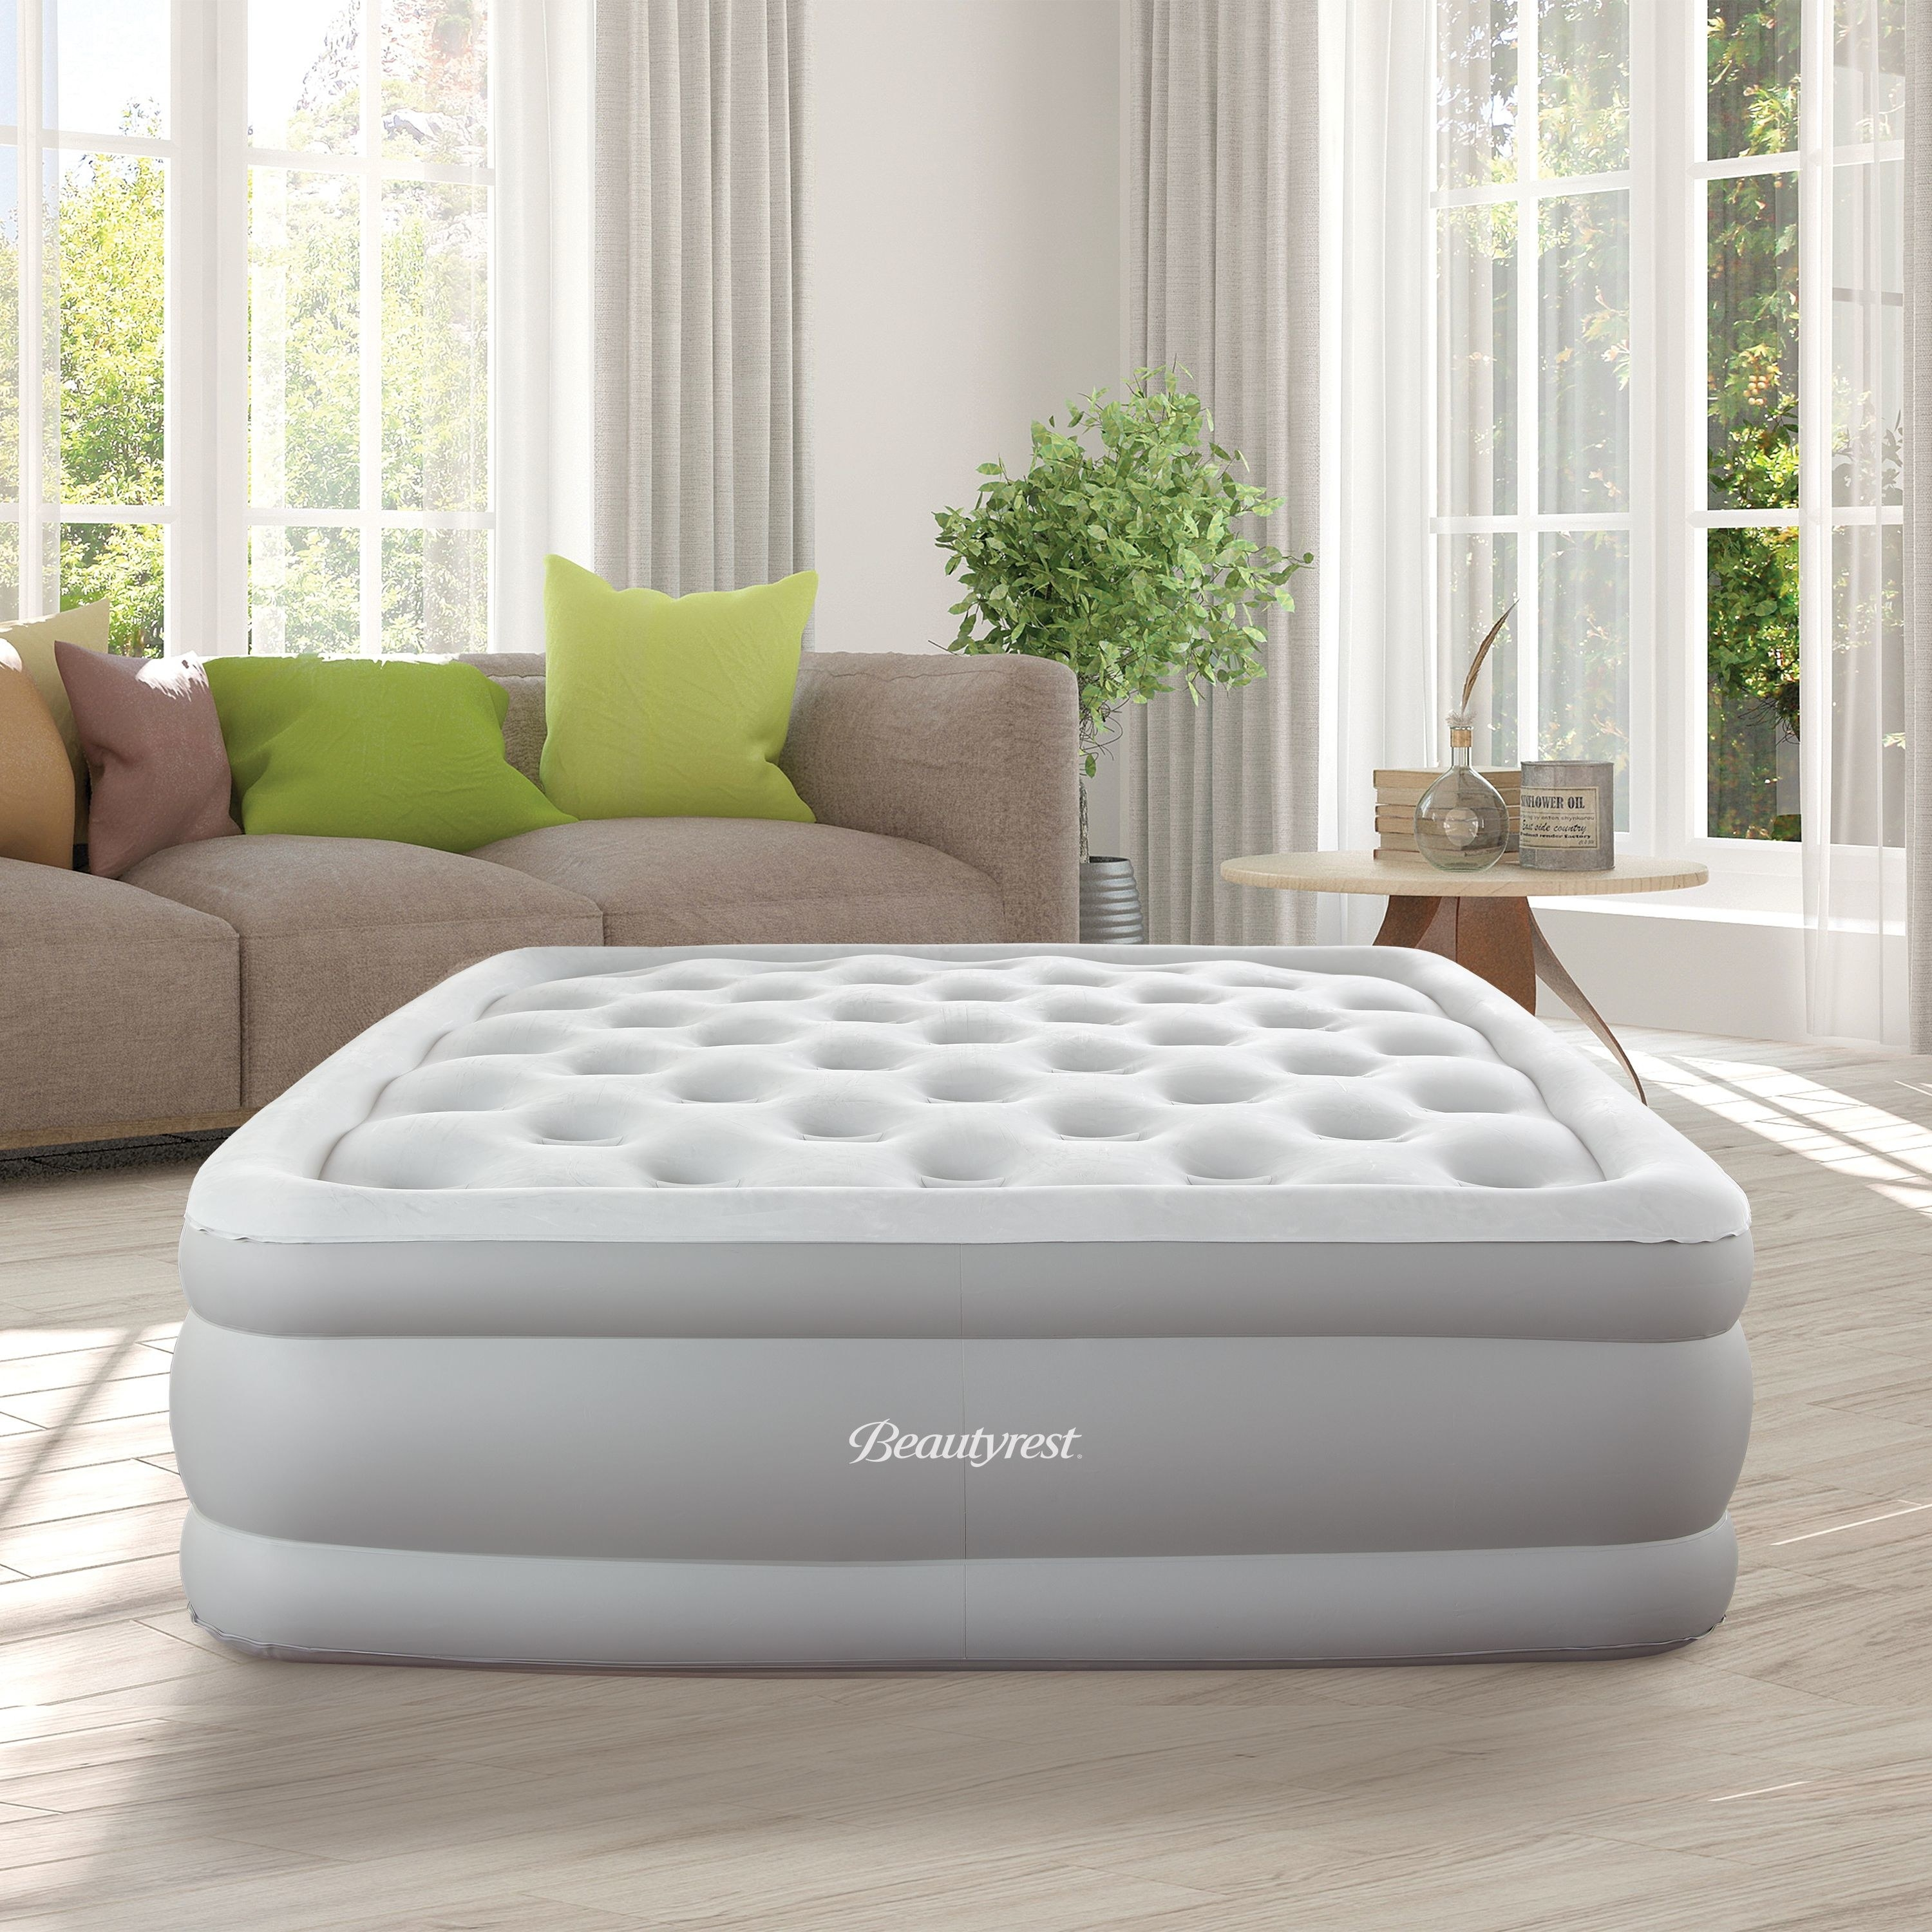 gray beautyrest air mattress inflated in the middle of a living room